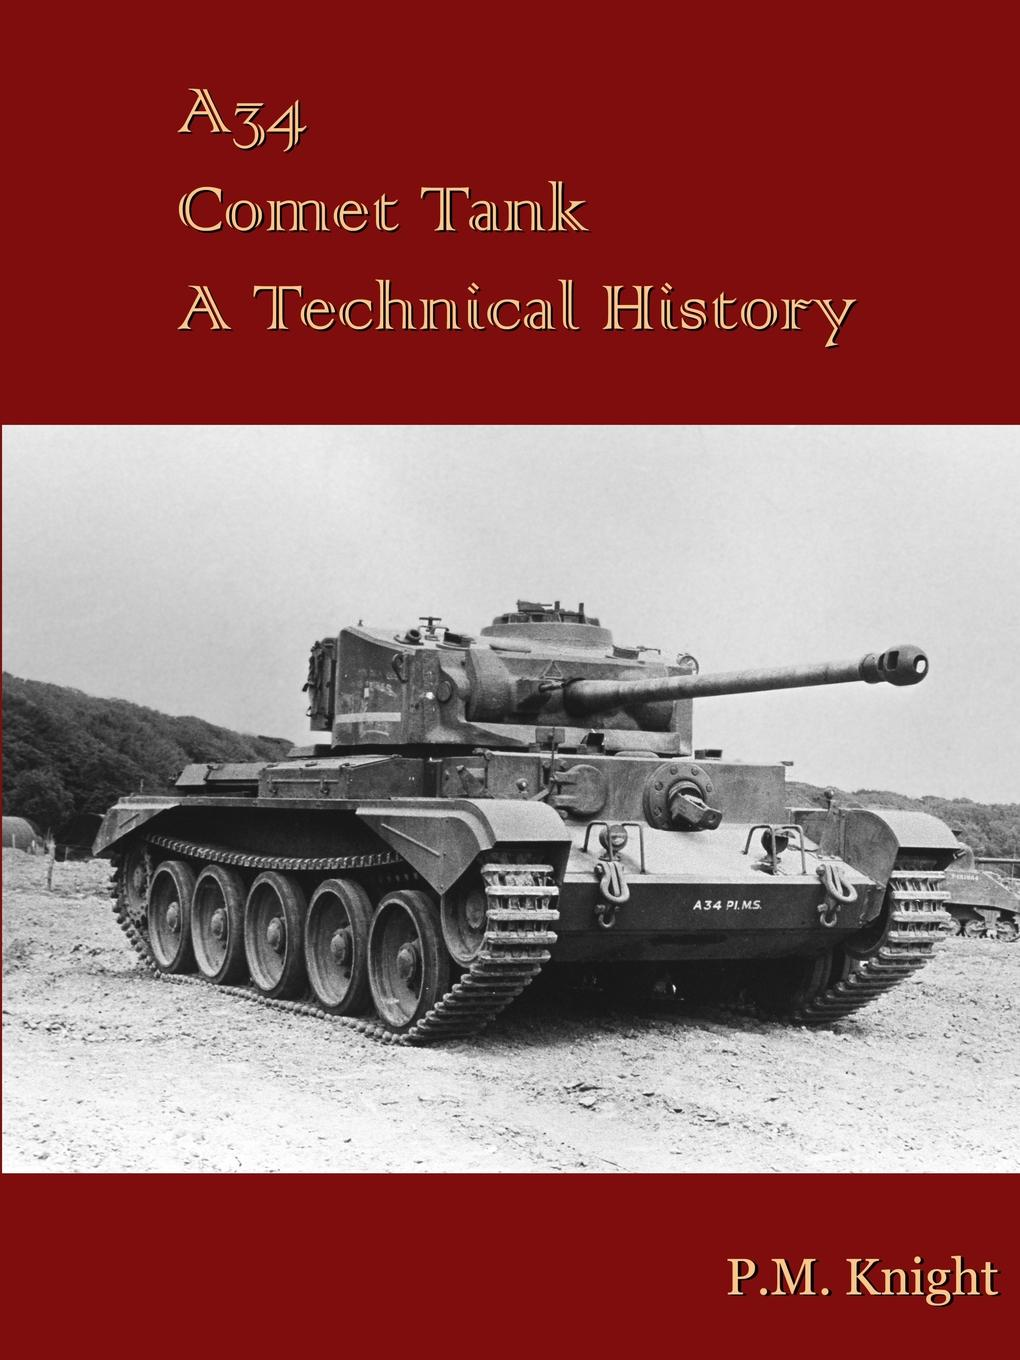 P.M. Knight A34 Comet Tank A Technical History the tank book